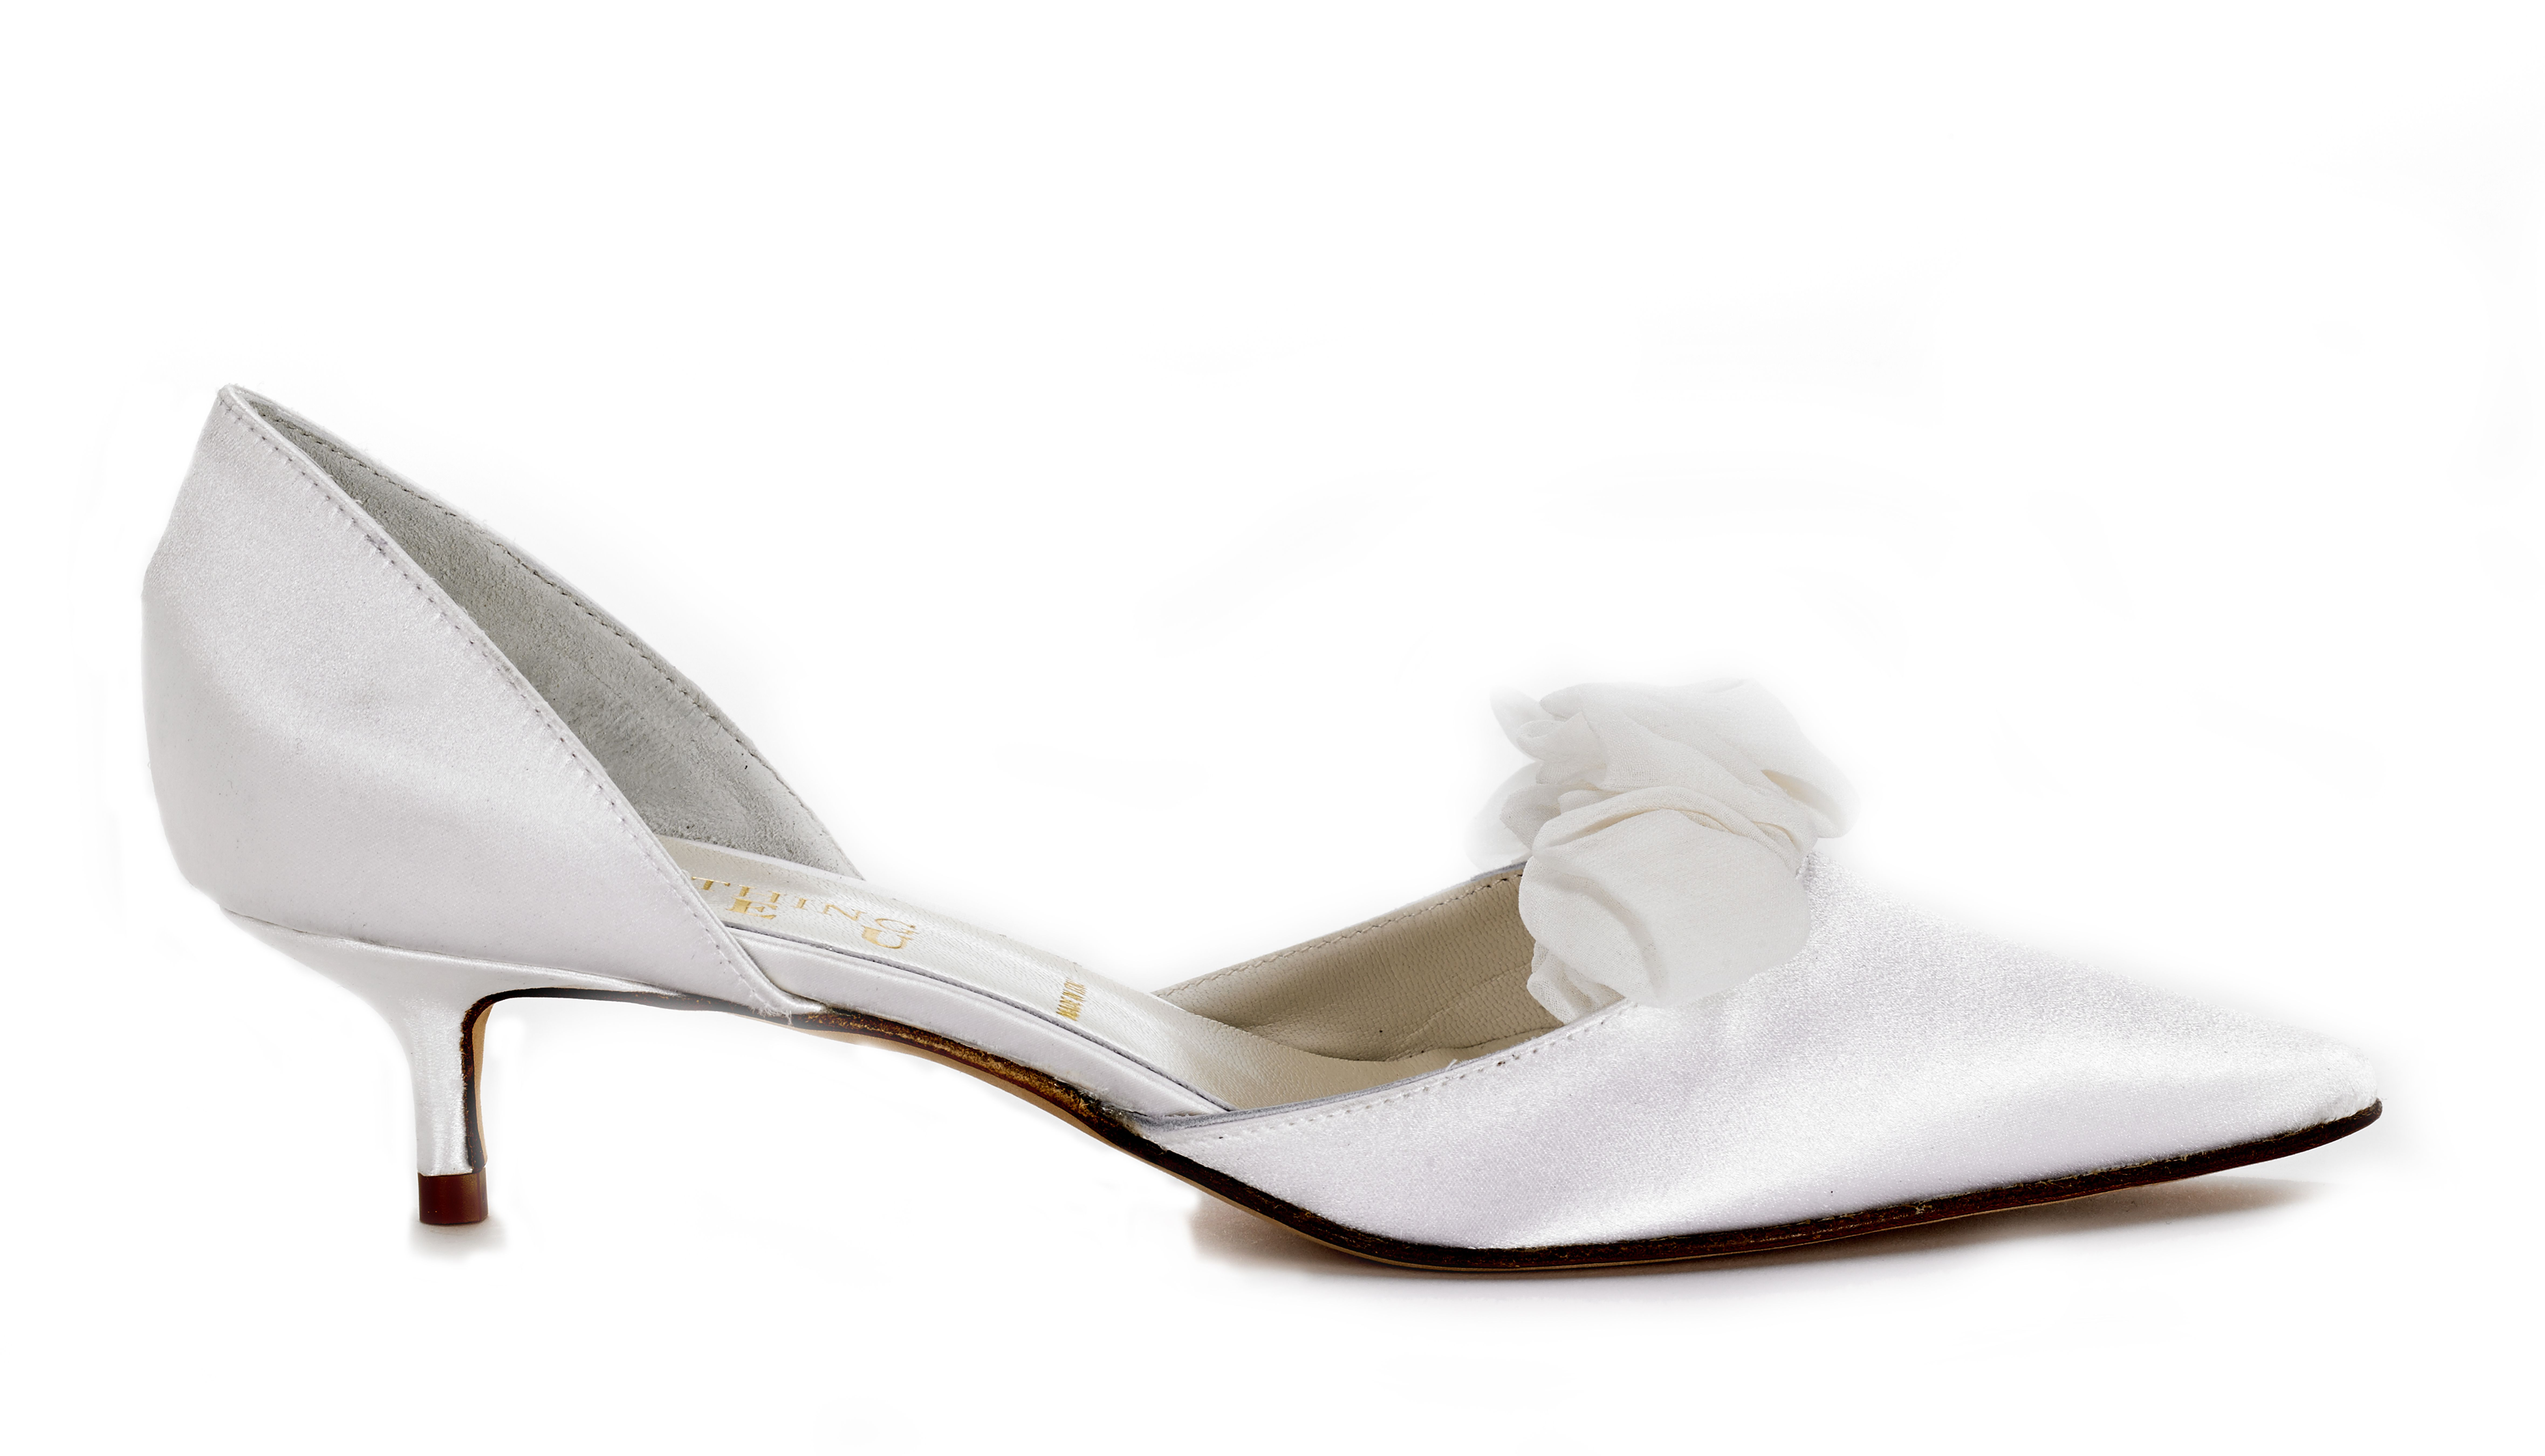 http://www.bellissimabridalshoes.com/bridal-shoes/white-bridal-shoes/something-bleu-chastity-bridal-shoes   TheSomething Bleu Chastity Bridal Shoes aresoft and simple lovely closed toe d'Orsay pumps with front ruffle detail. The design of t